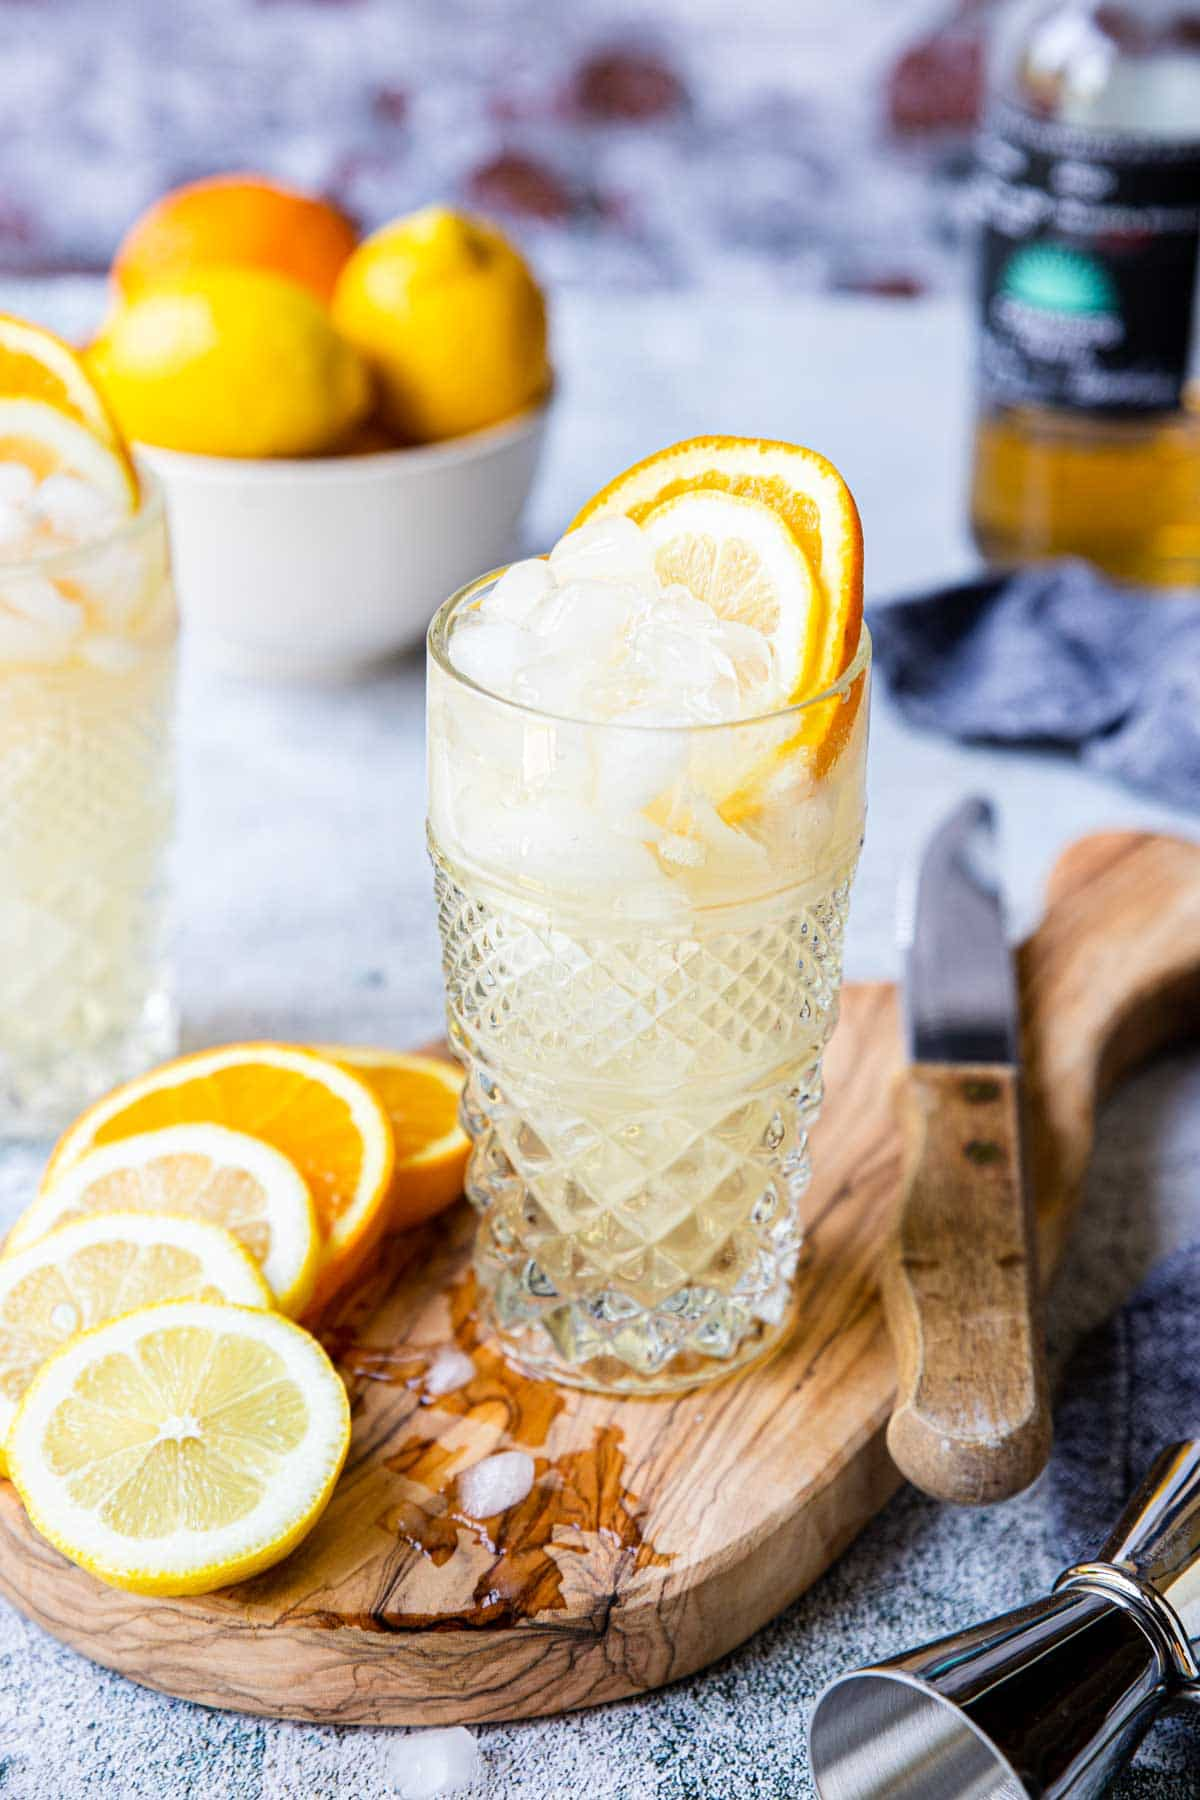 tequila cobbler in a glass garnished with lemon and orange wheel